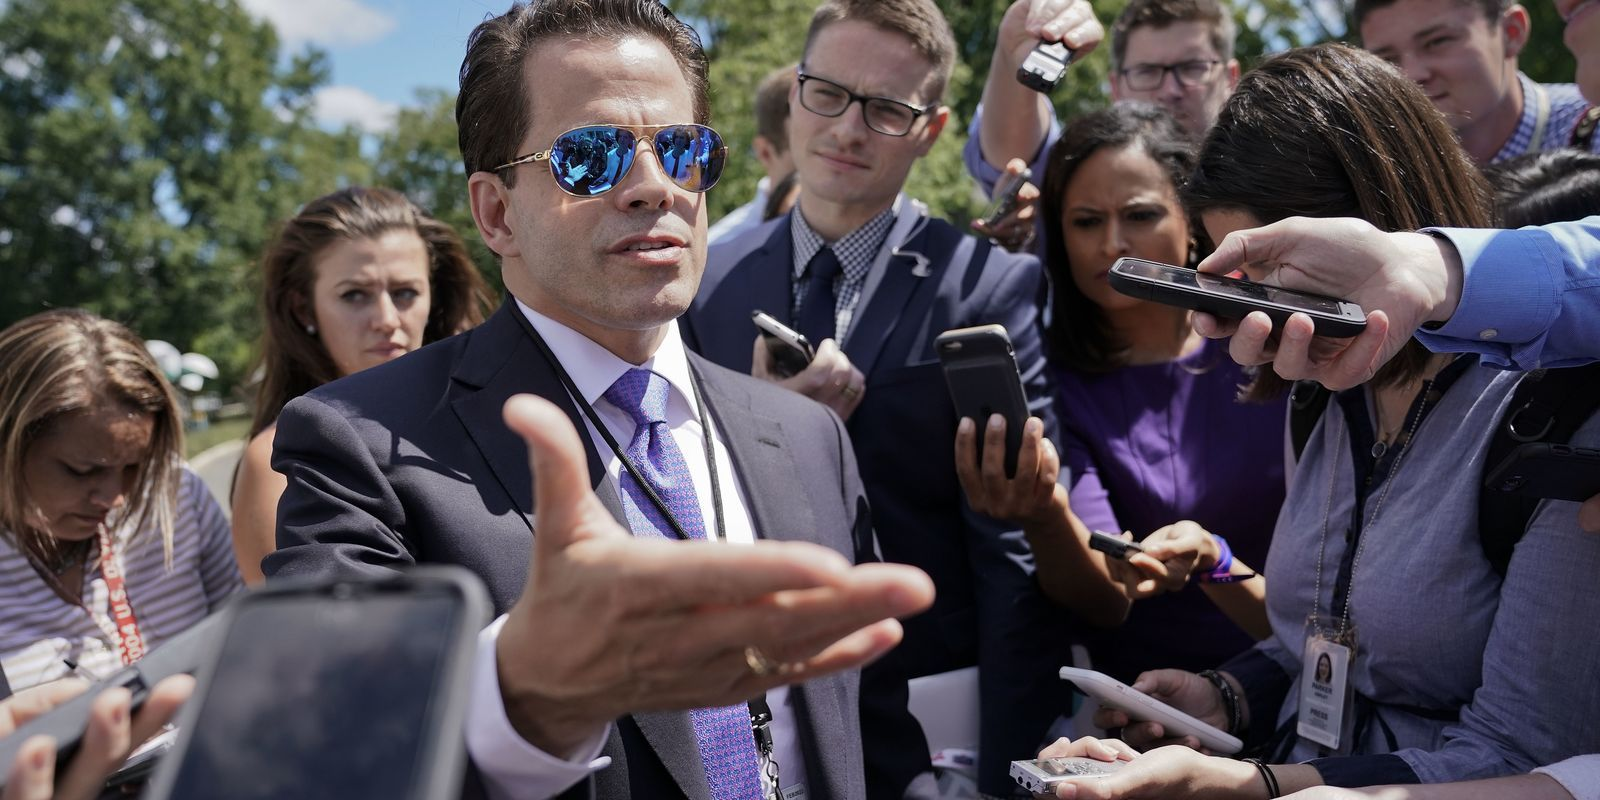 Anthony Scaramucci, communications director for President Donald Trump, caused a stir with comments he made about Trump's then-chief of staff, Wisconsinite Reince Priebus. (USA Today)